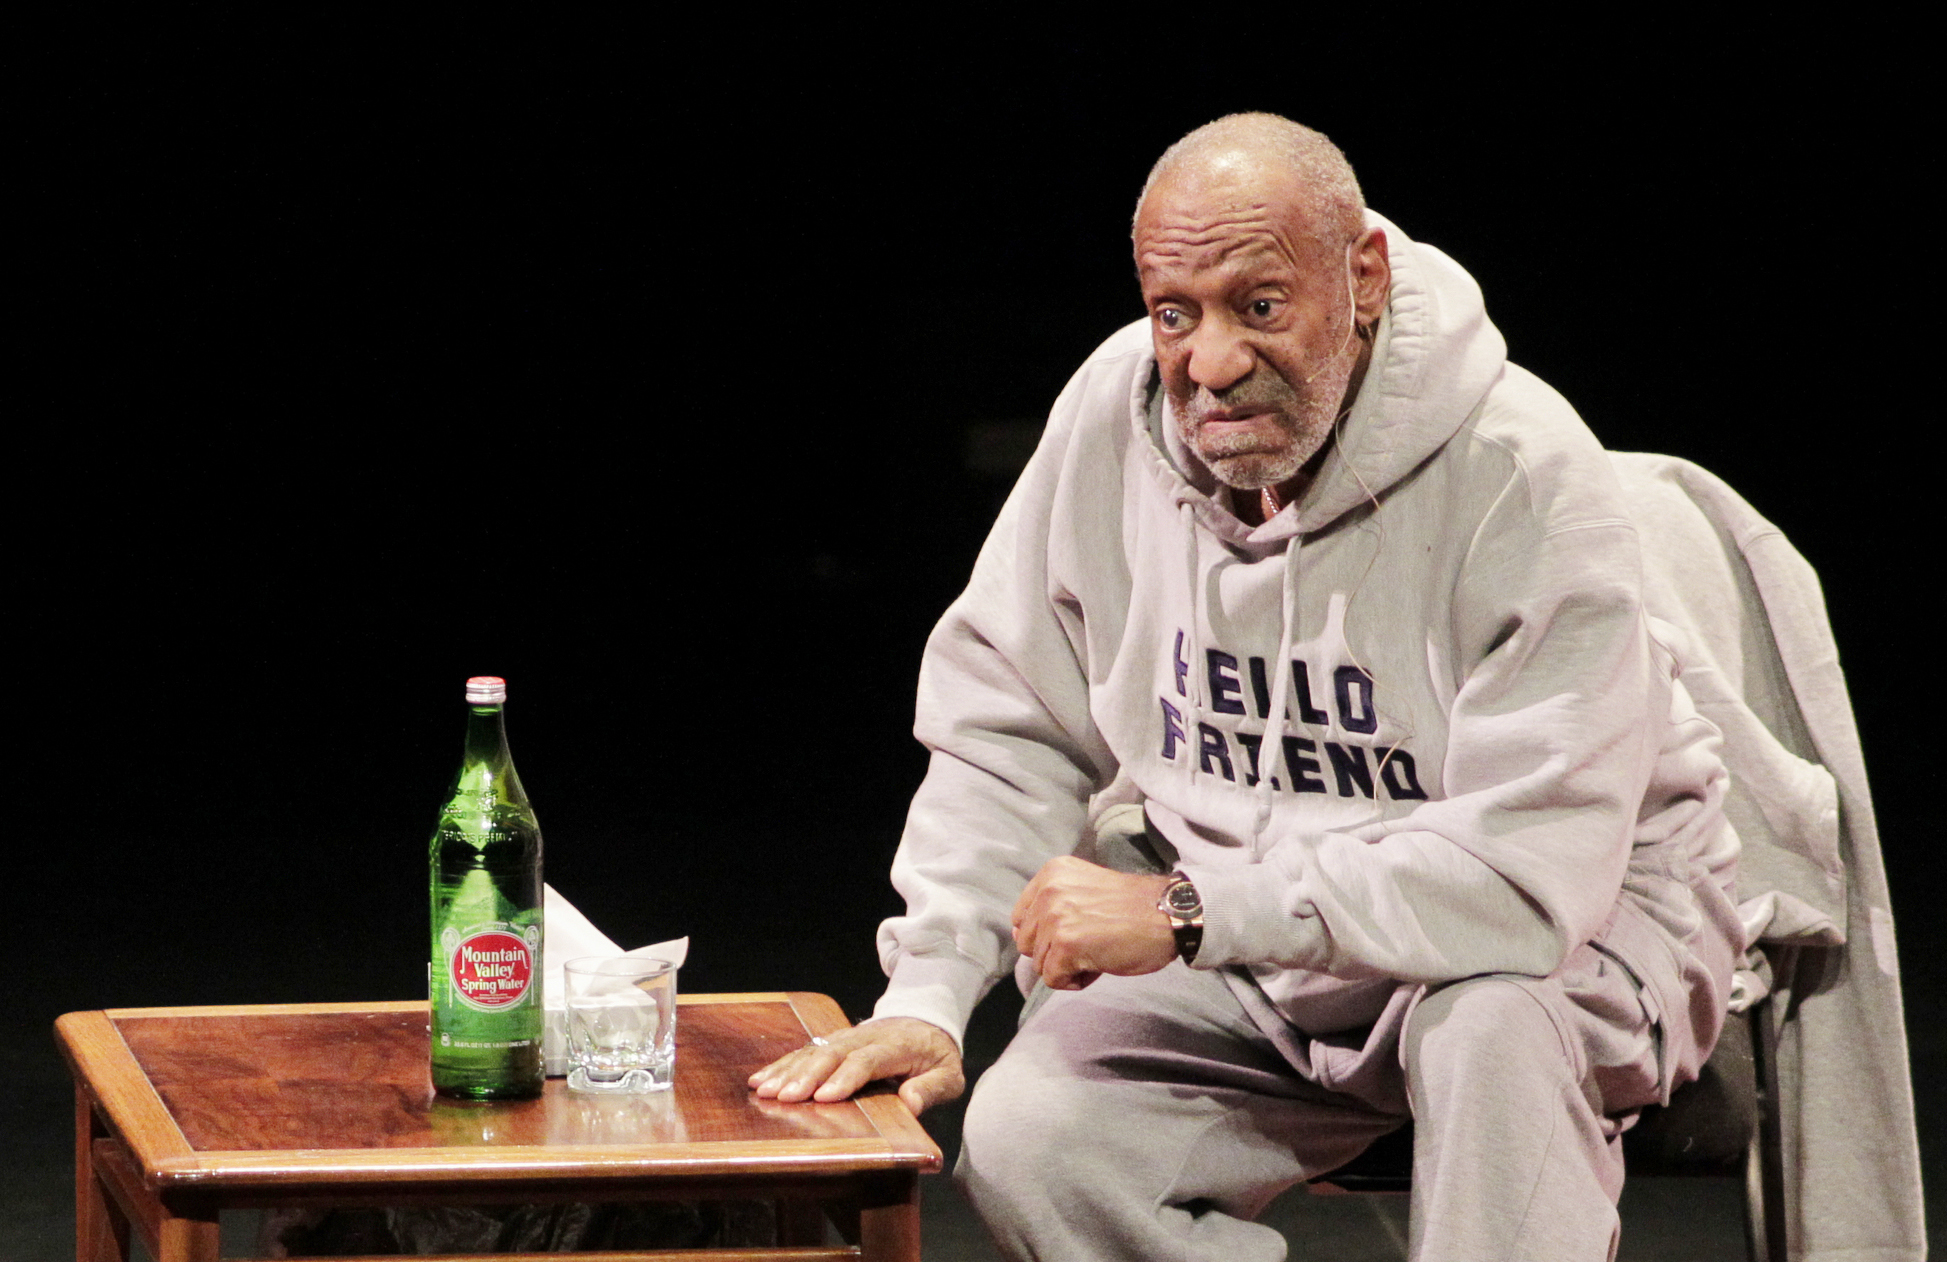 Comedian Bill Cosby performs at The Temple Buell Theatre in Denver, Colorado Jan. 17, 2015